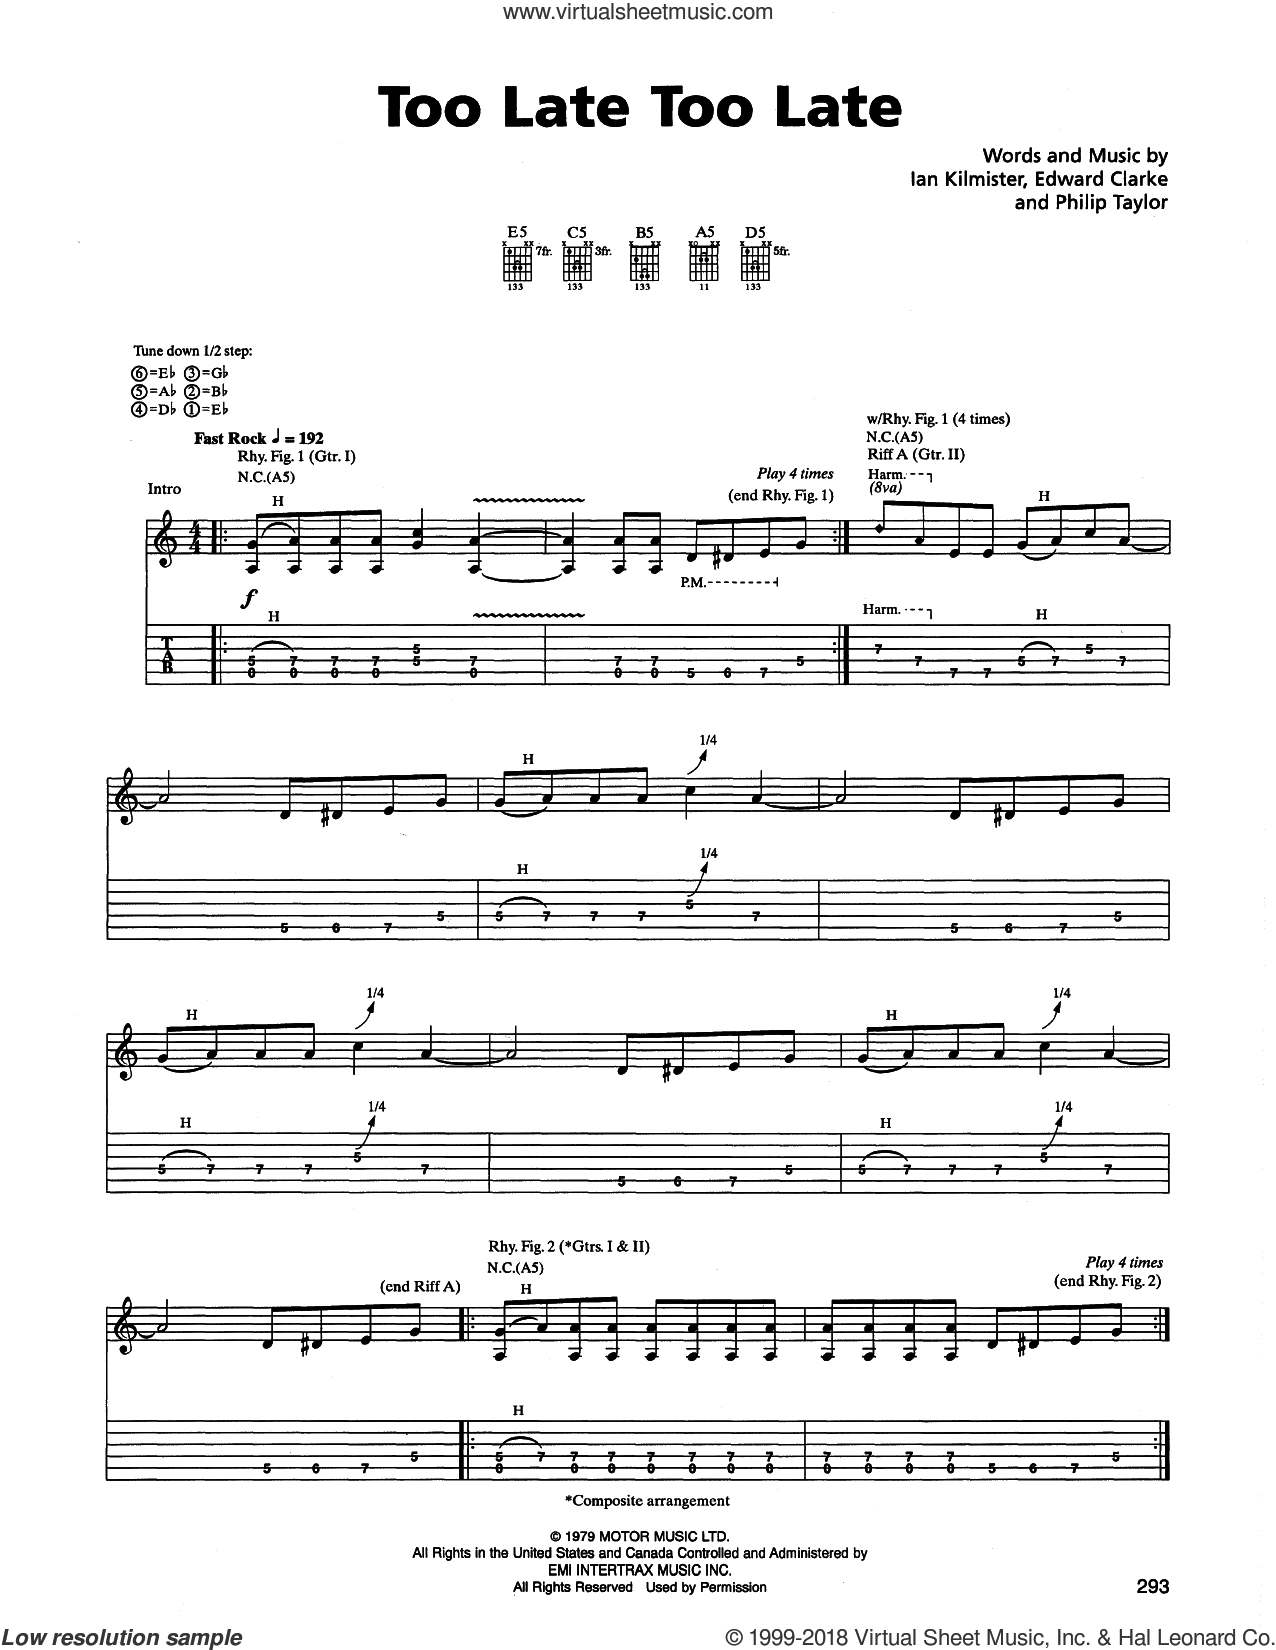 Too Late Too Late sheet music for guitar (tablature) by Philip Taylor and Edward Clarke. Score Image Preview.